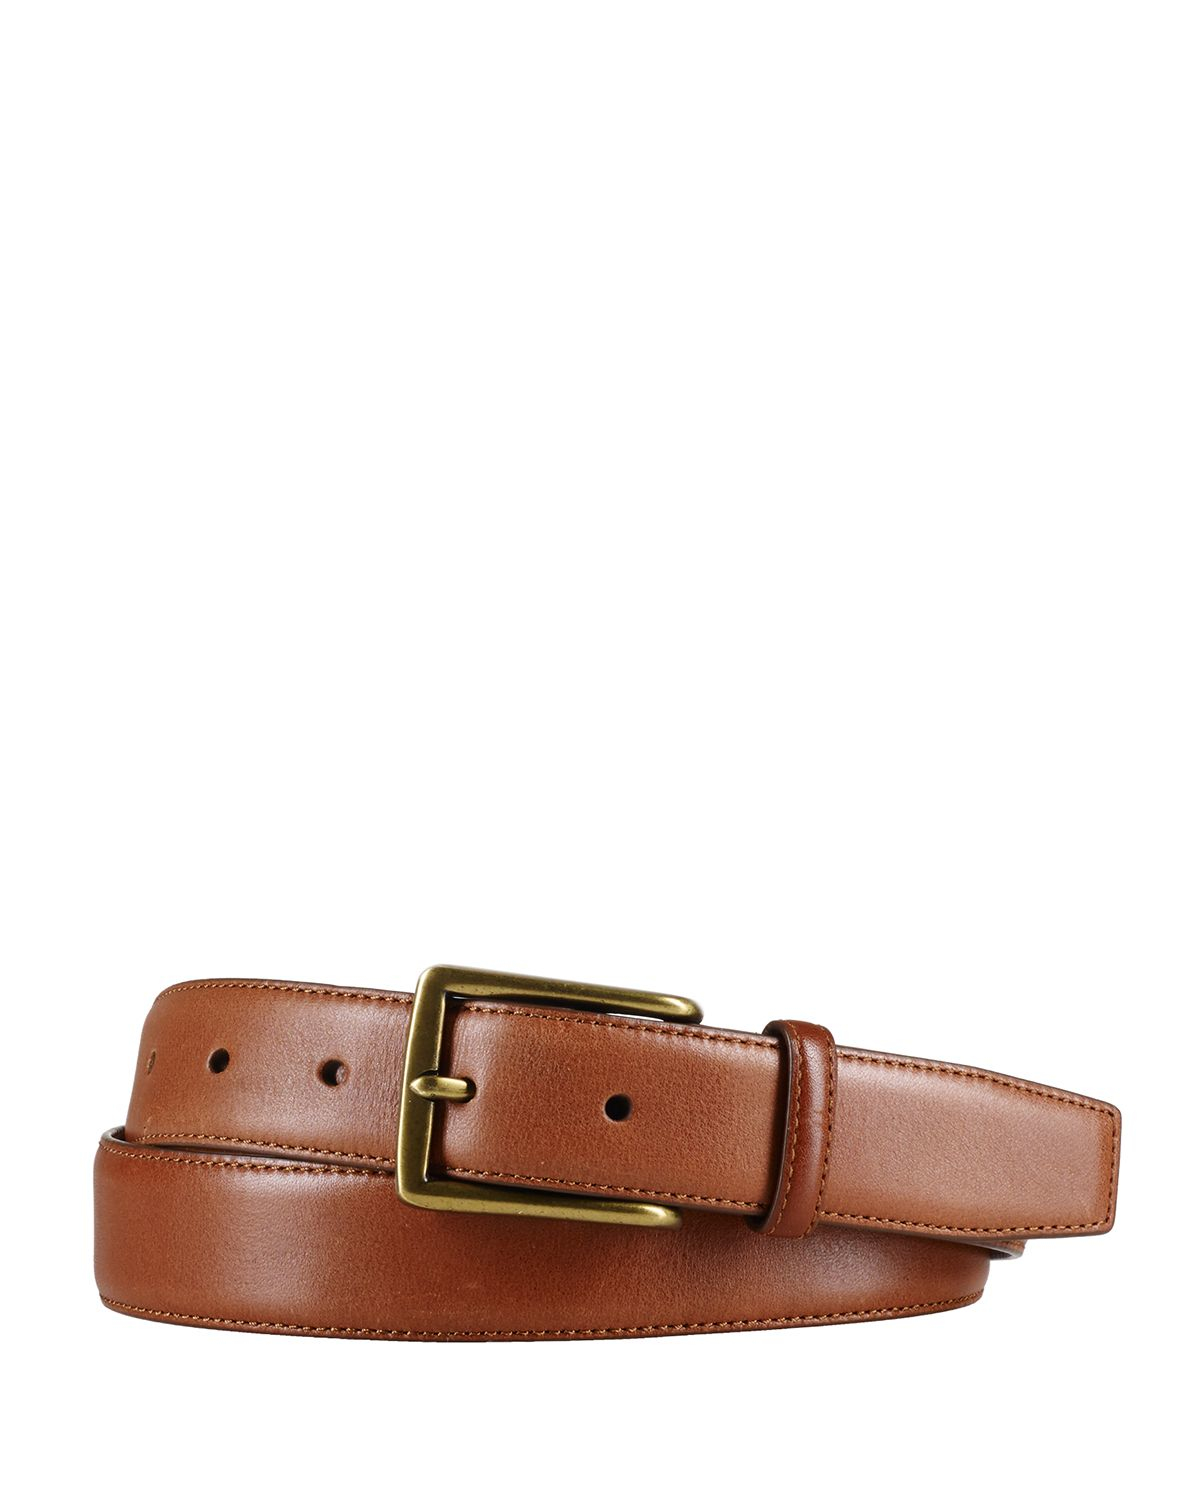 ralph polo leather dress belt in brown for